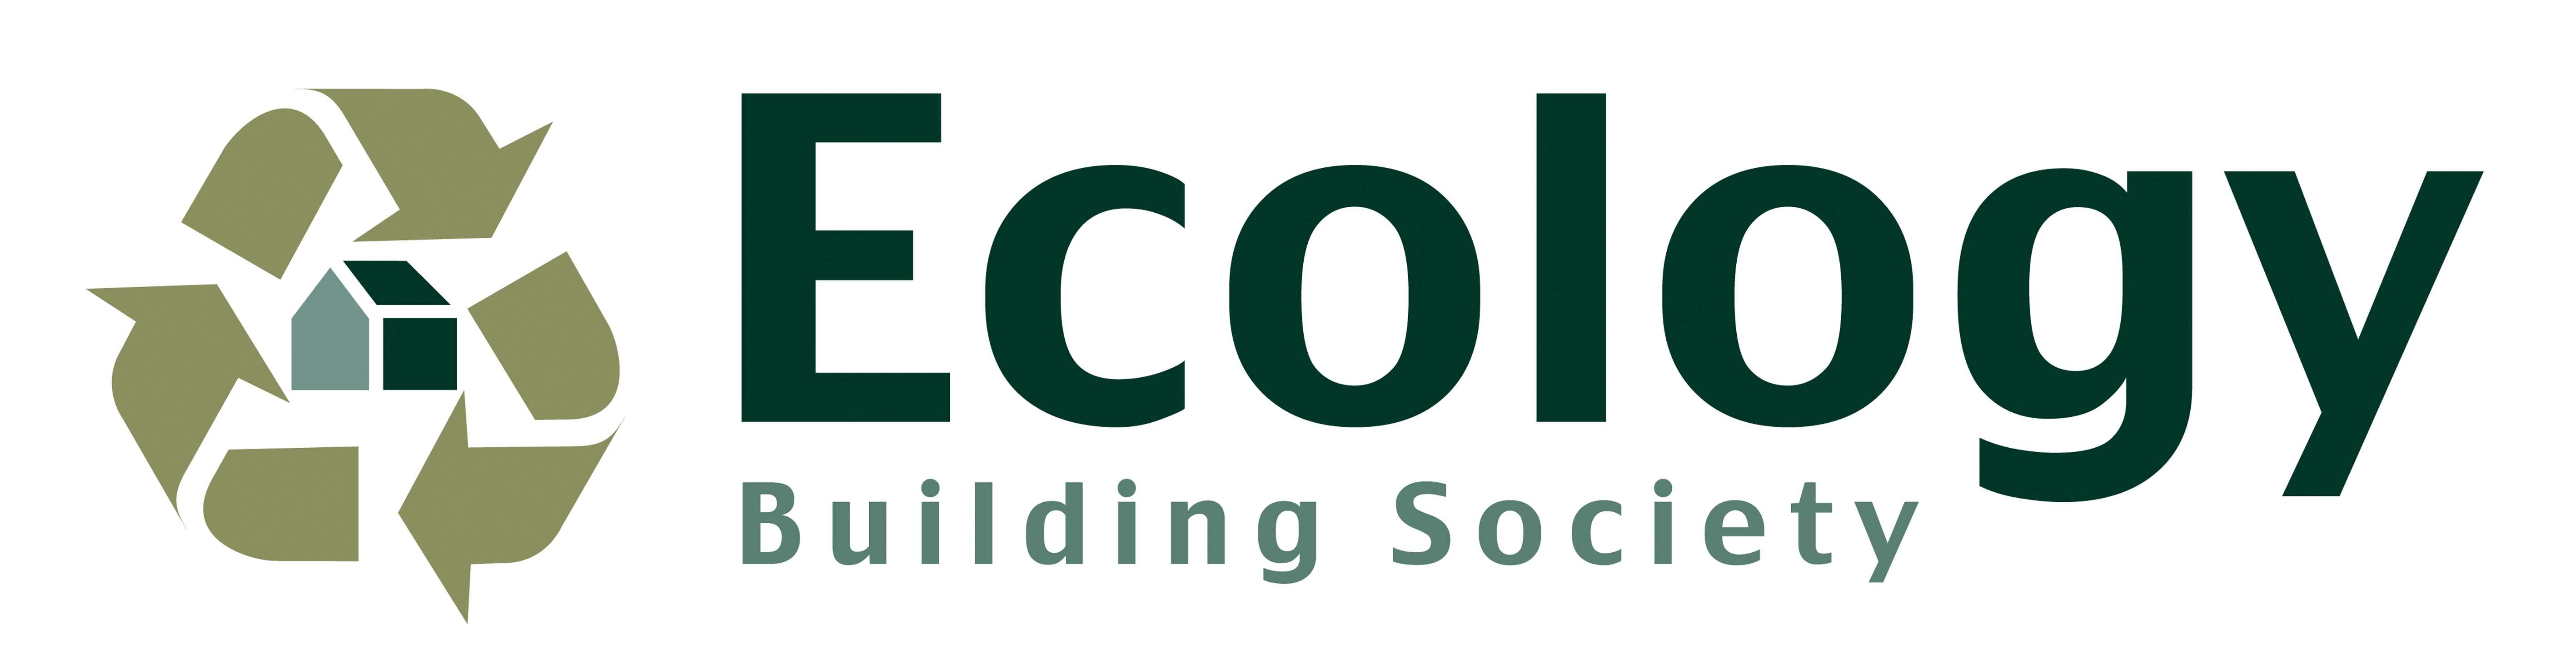 Ecology Building Society.Logo